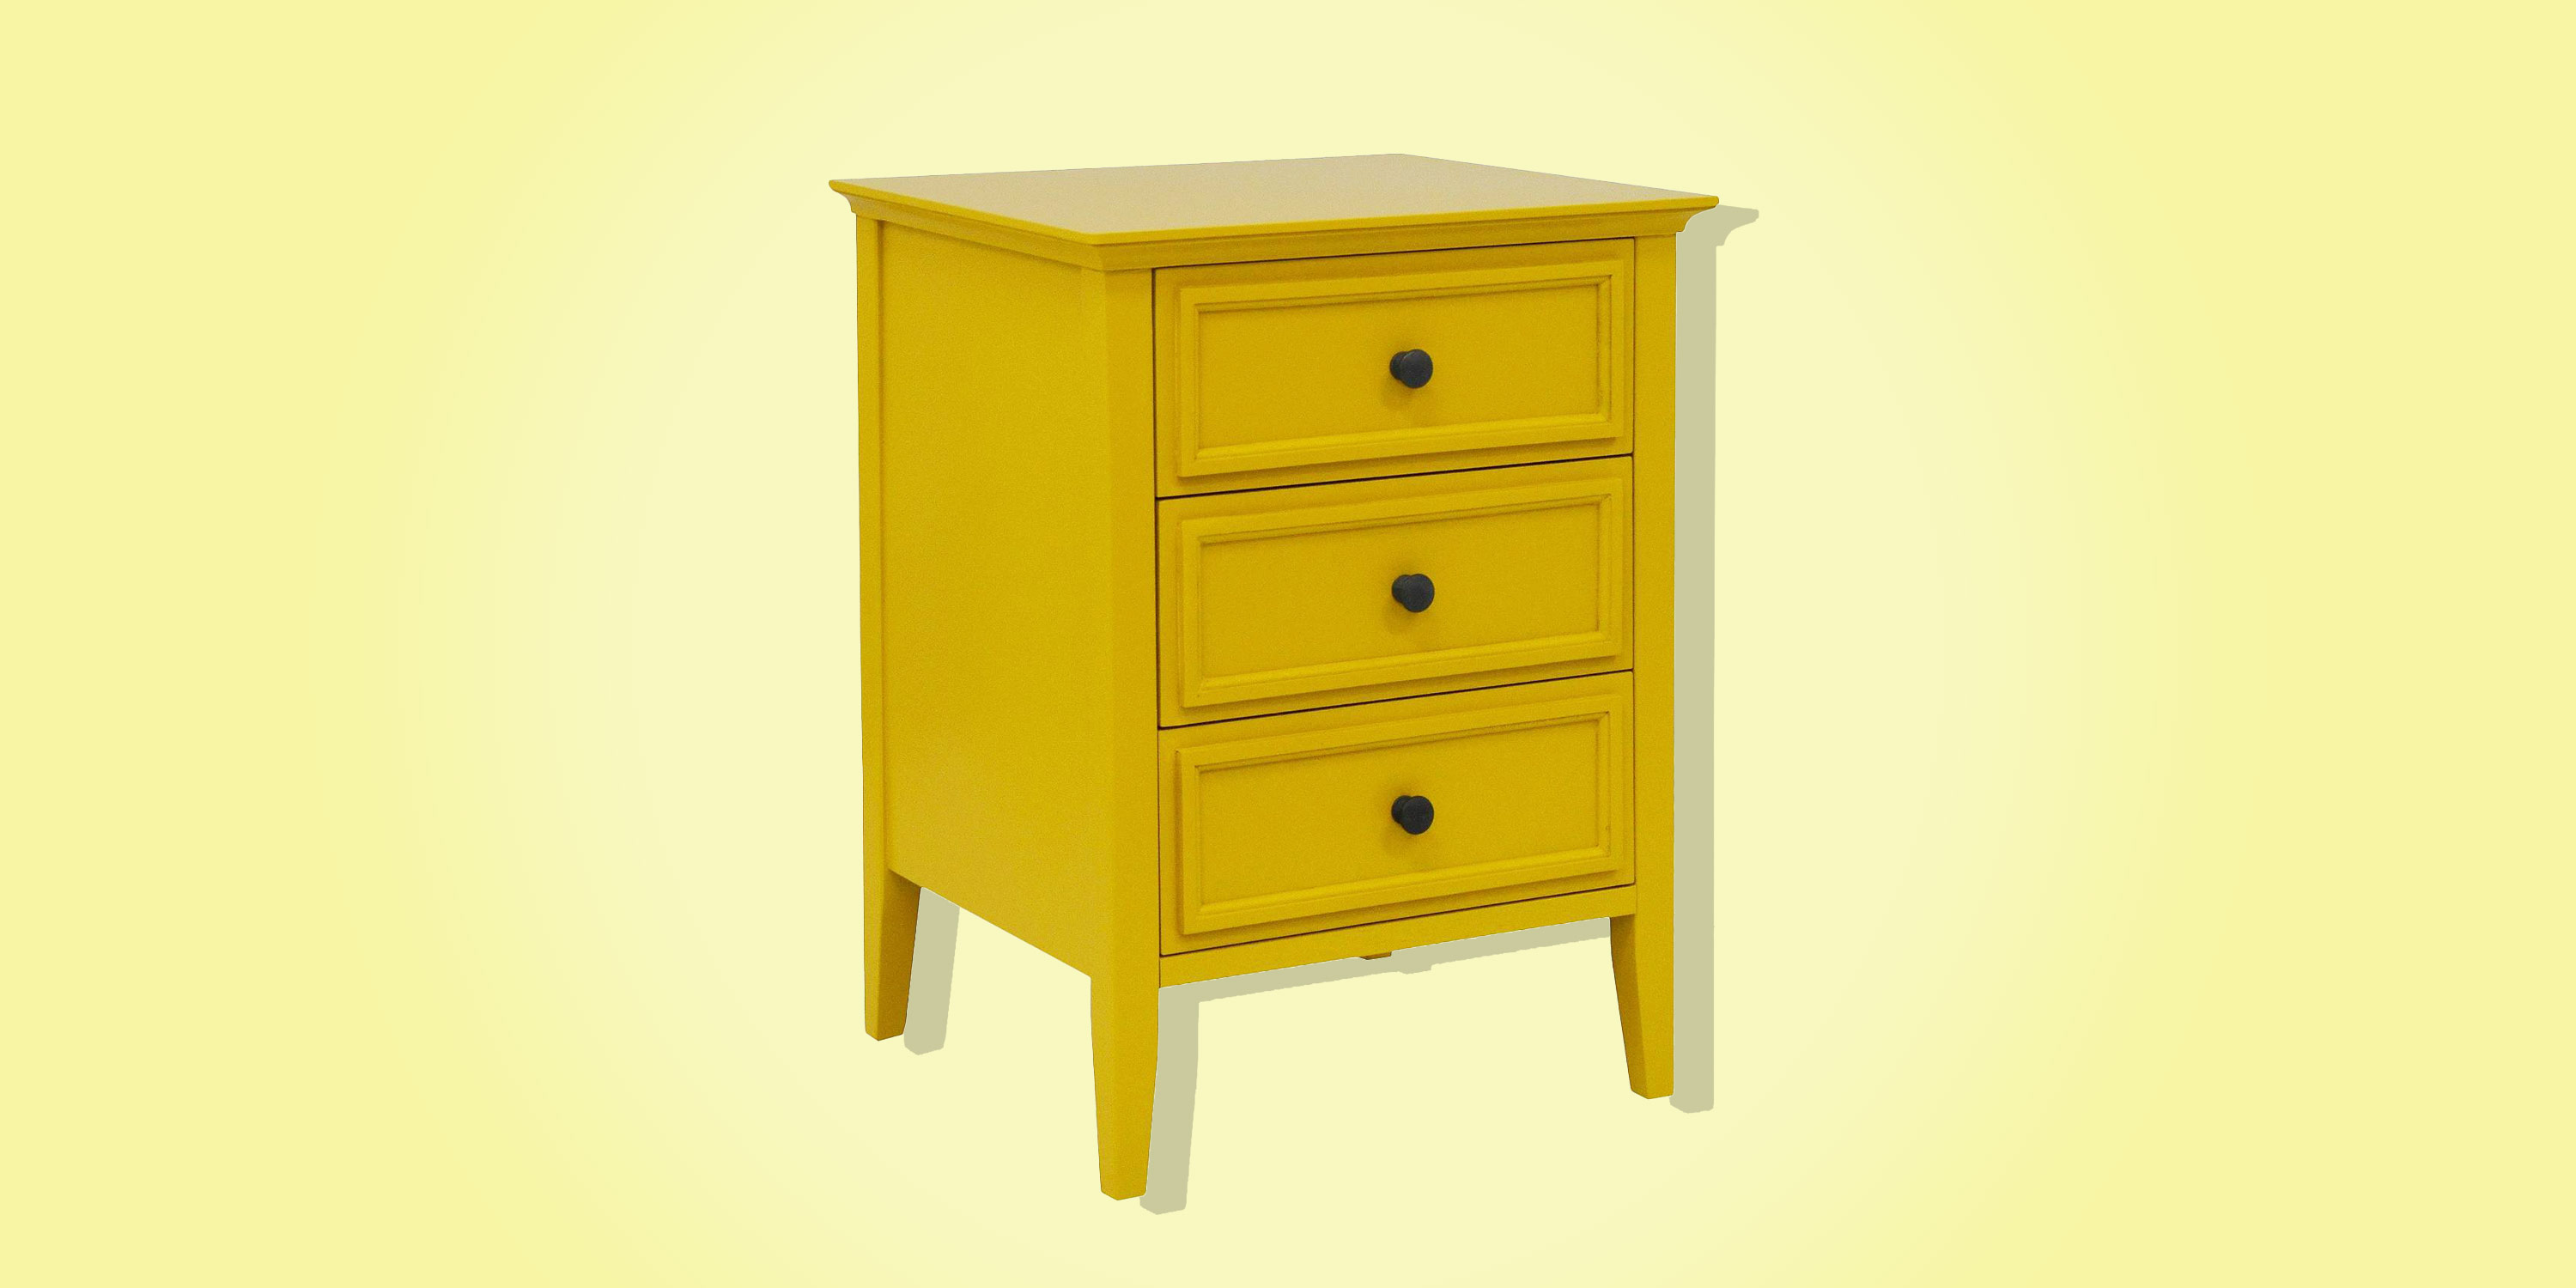 best bedside table from target end lede elkton three drawer painted yellow this bright nightstand bit garish but love laura ashley catalogue log cabin circular cover ethan allen